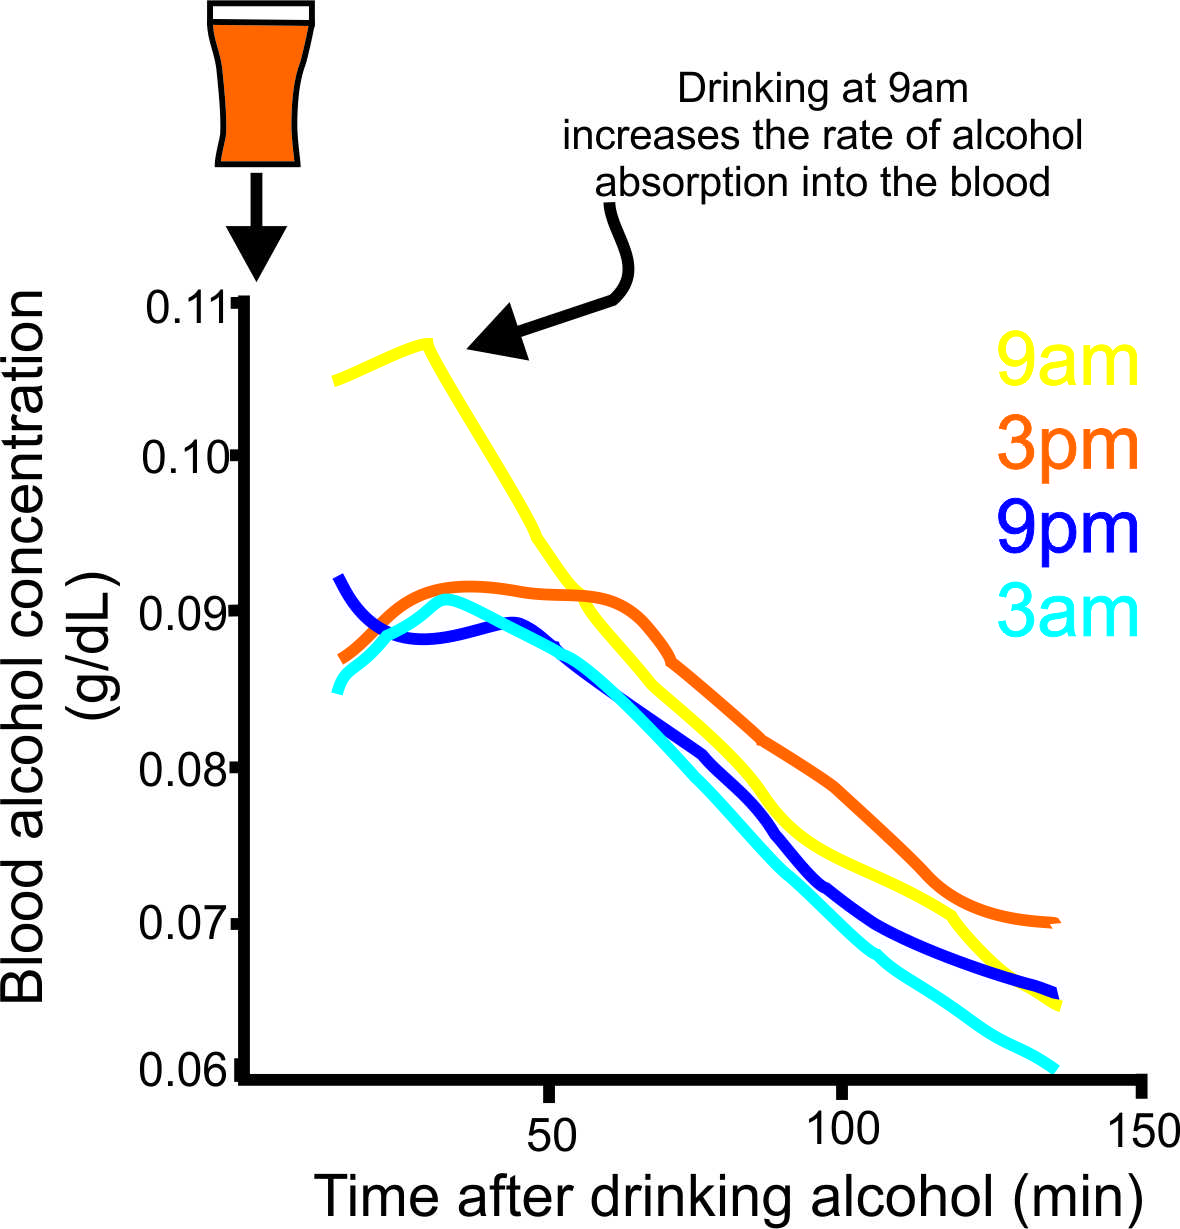 Blood alcohol levels are higher when drinking during the day adapted